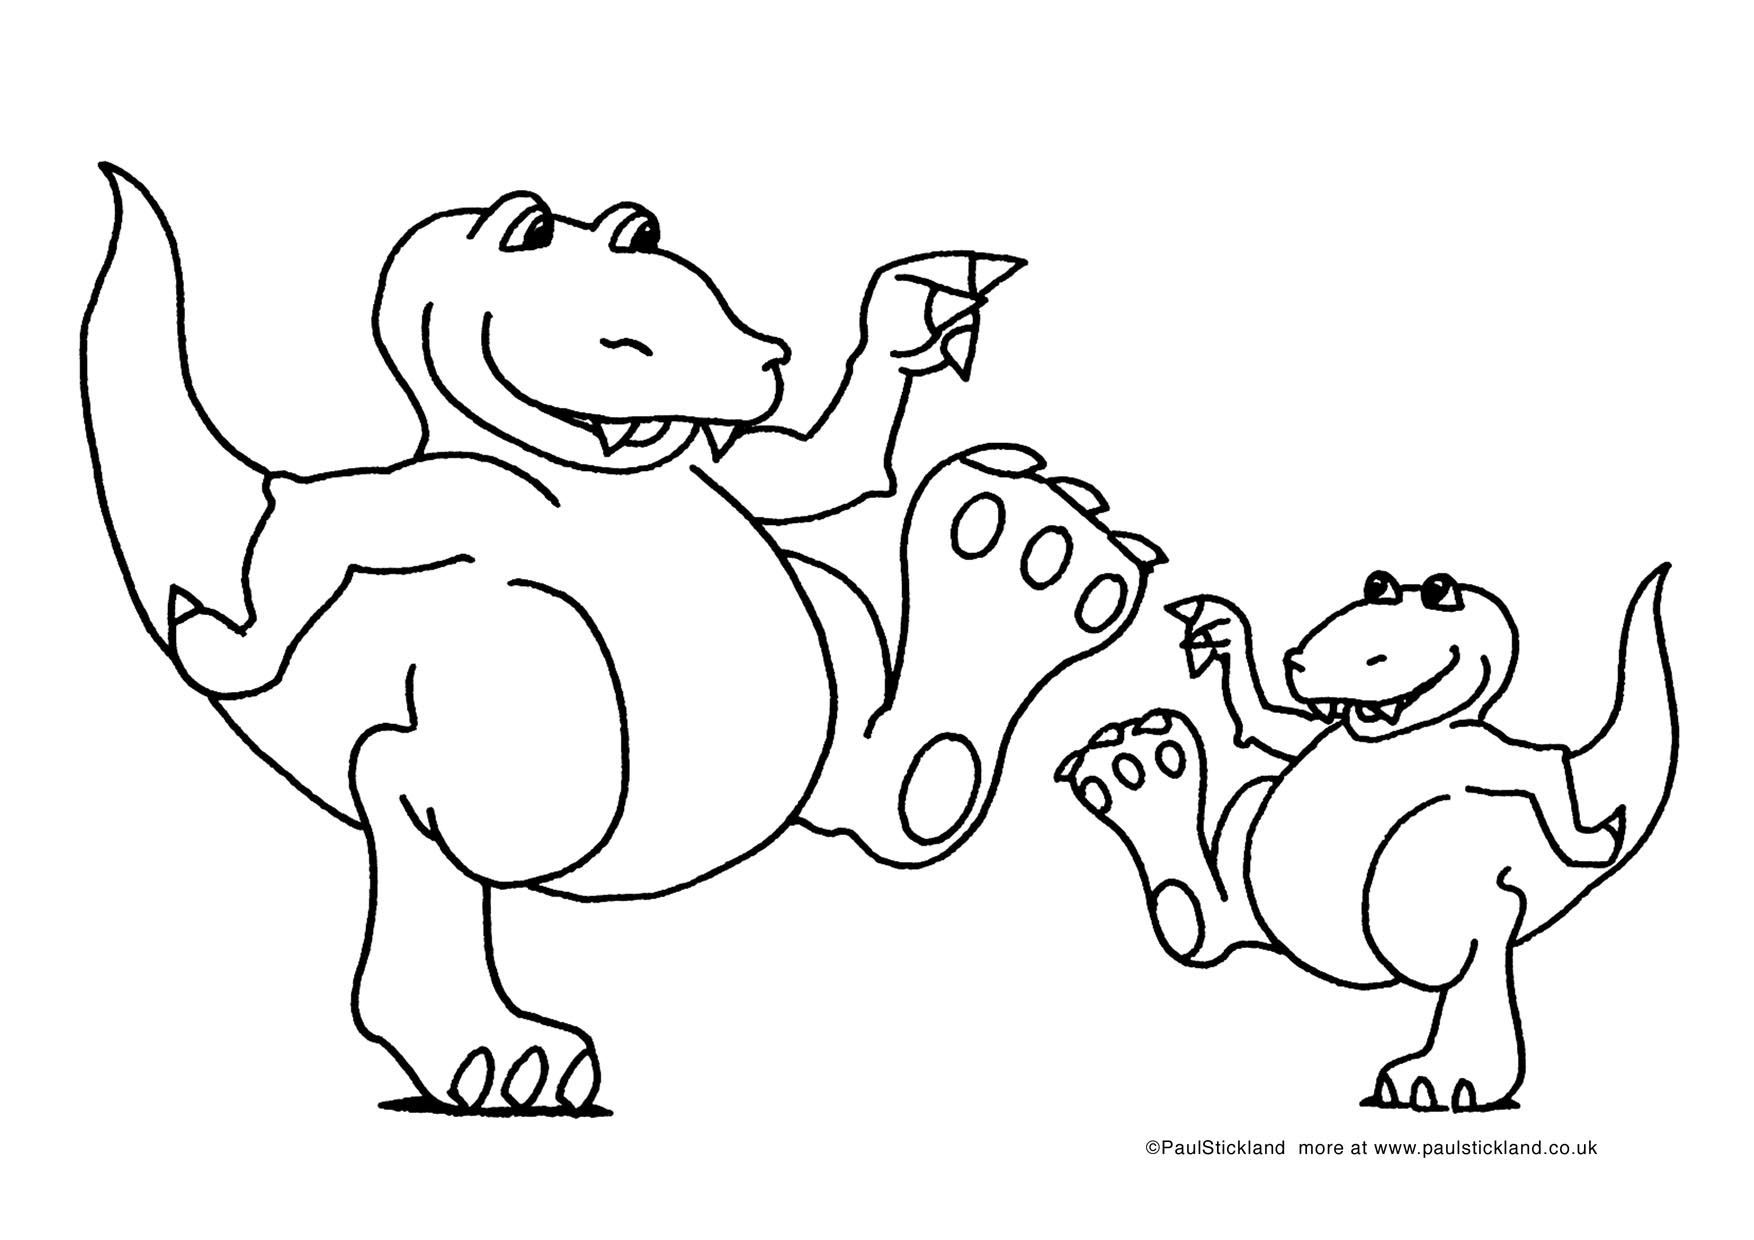 Dinosaur coloring pages from Paul Strickland\'s book Dinosaurs Roar ...